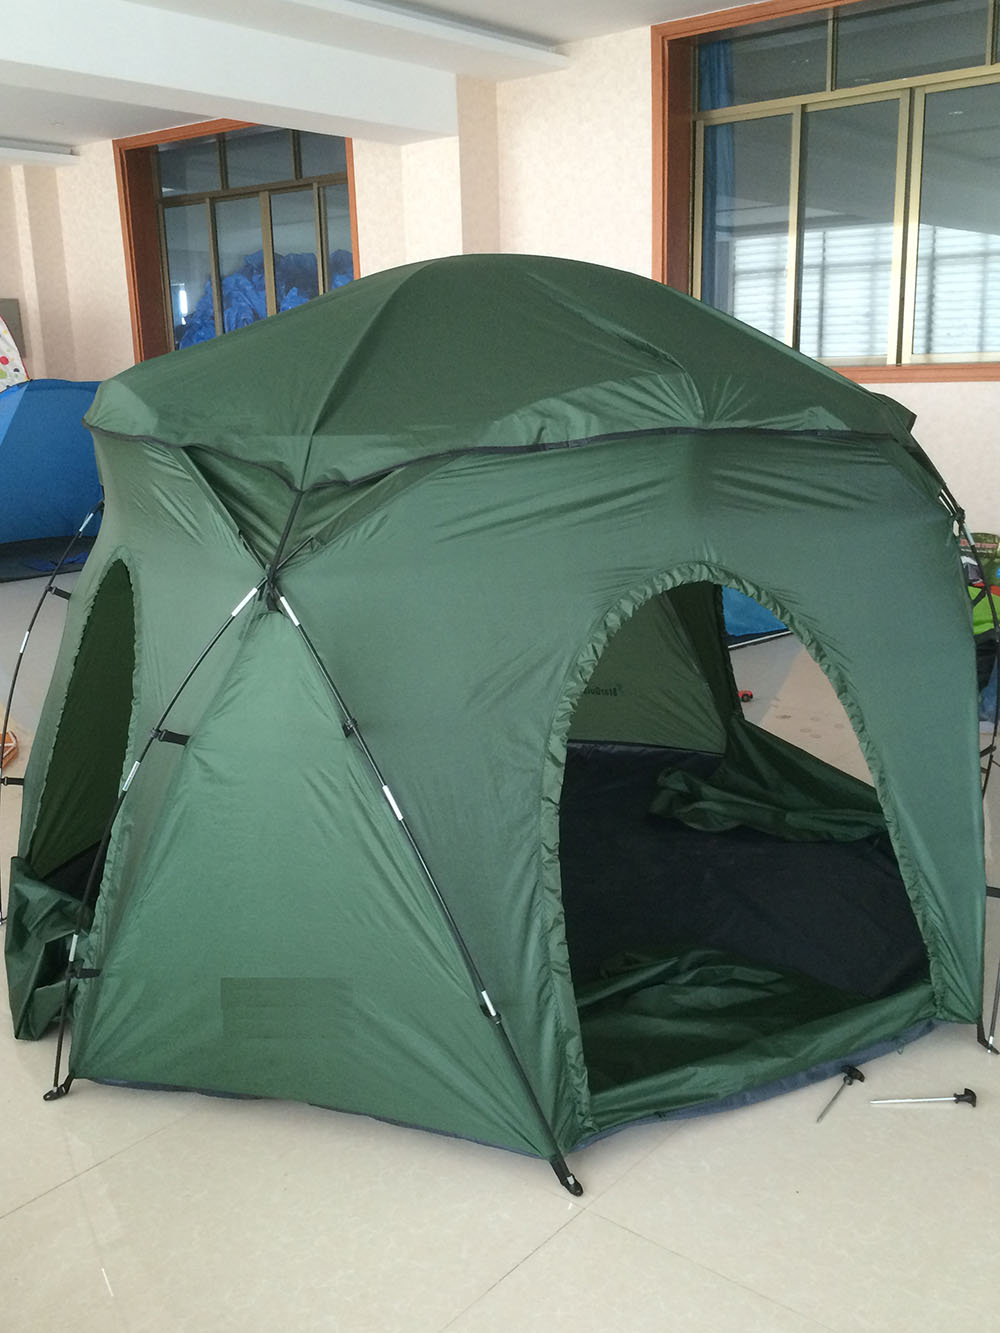 NEW STRONGER MORE DURABLE MATERIAL. FLY COVER INCLUDED. LARGE 10 FEET DIAMETER OF OBSERVING SPACE. & CLEAR-VIEW PORTABLE OBSERVATORY TENT WITH FLY COVER